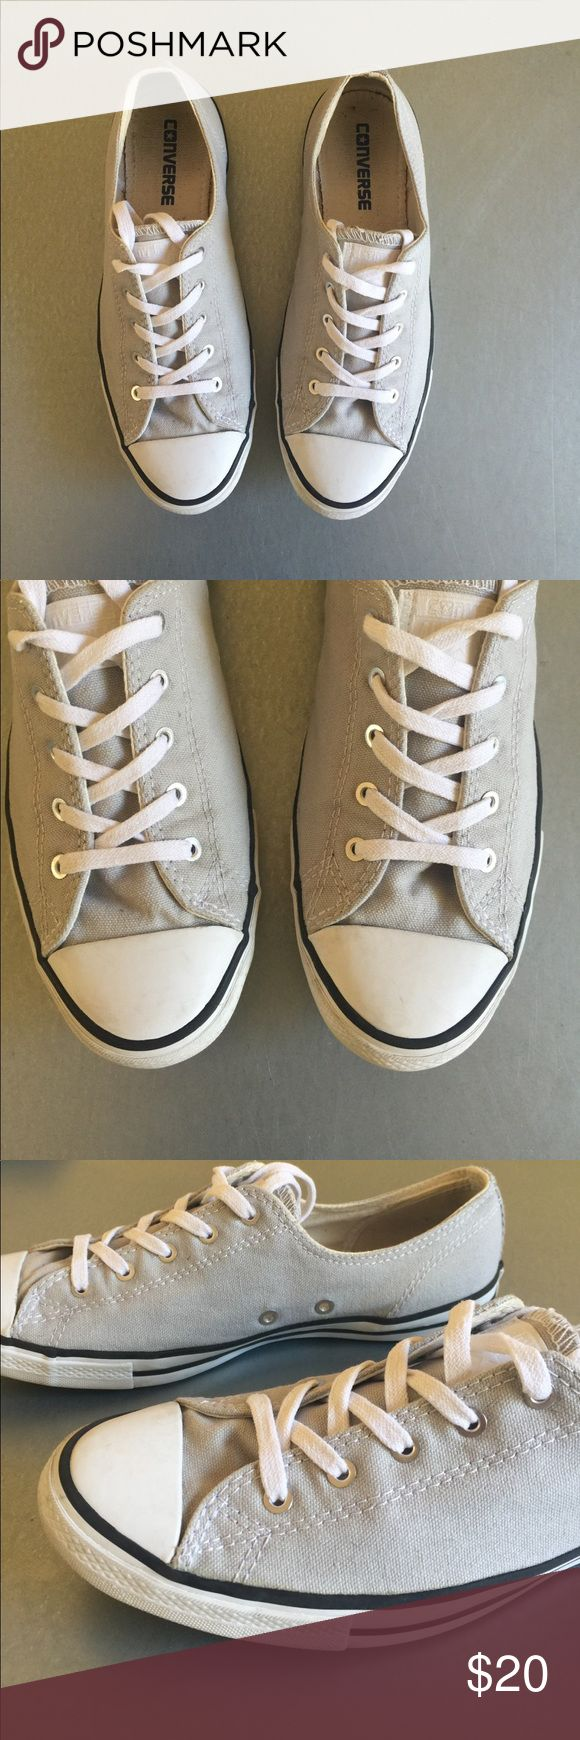 Women's converse slims size 7.5 light grey Women's converse slim style size 7.5 in light grey (oyster). Worn a handful of times but they fell out of my rotation. No box. Converse Shoes Sneakers